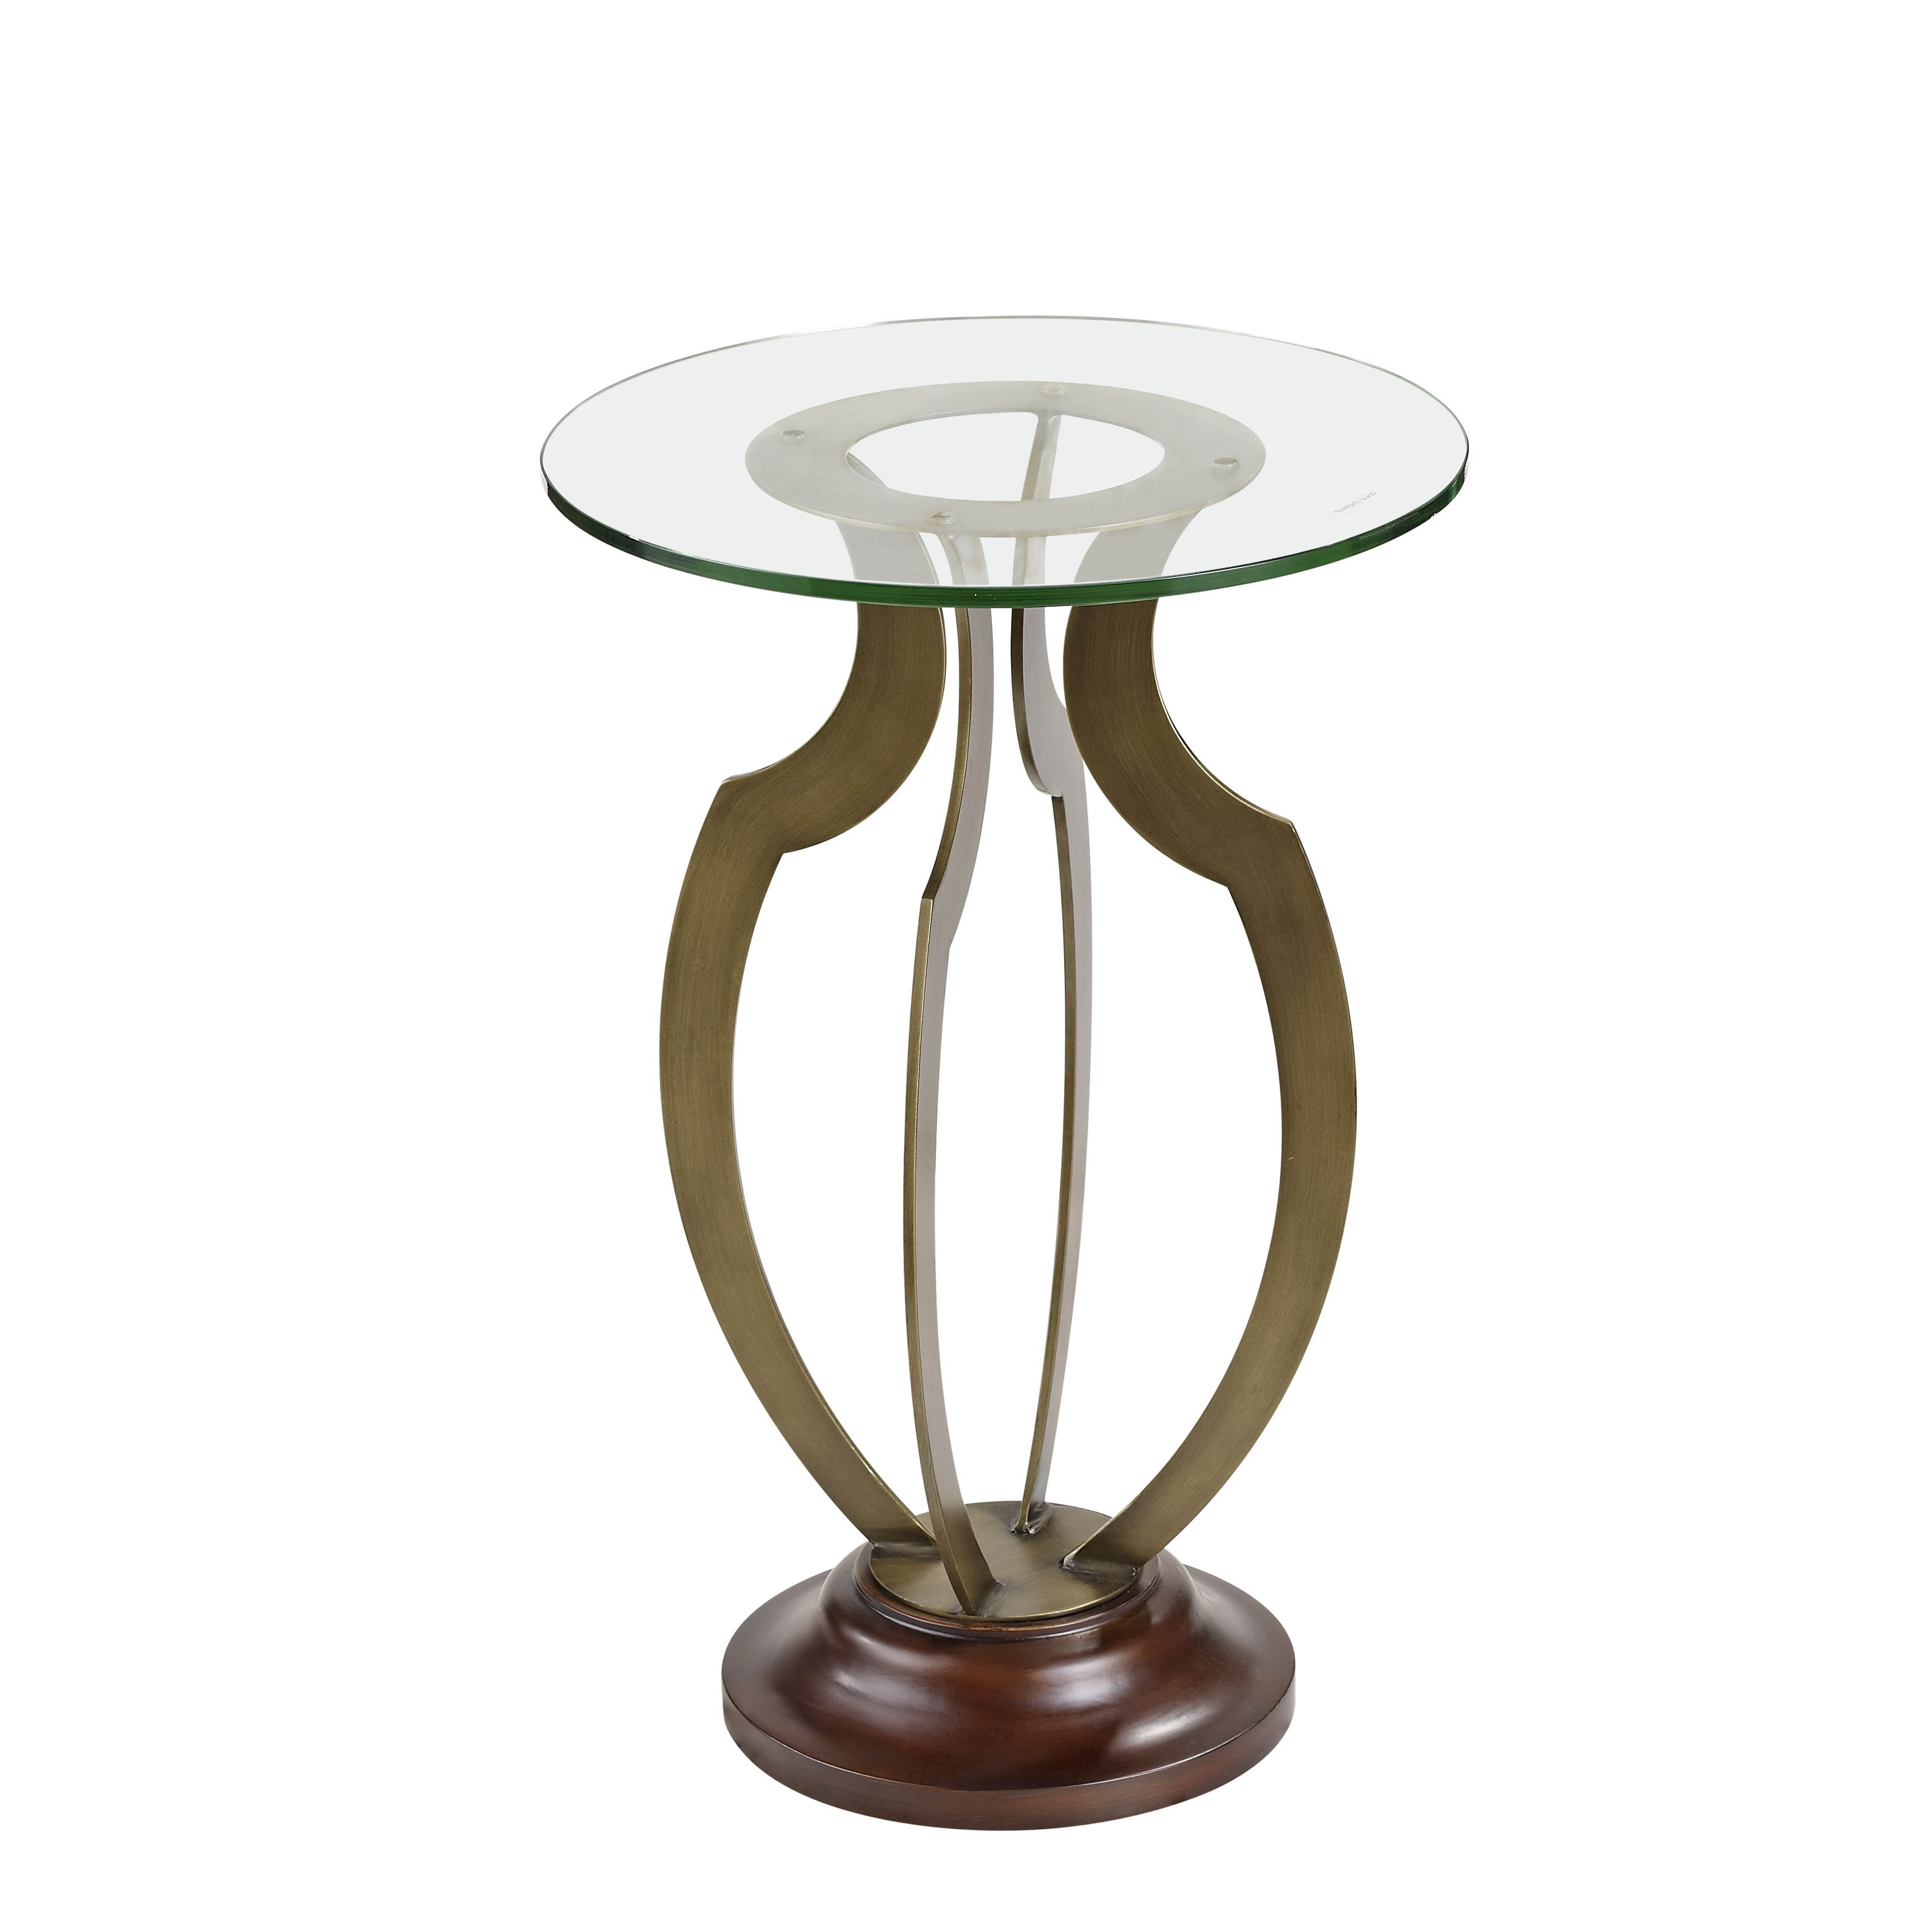 bassett mirror krier antique round accent table the classy home bmc silhouette vintage click enlarge winsome tiffany lamps chairs from pier one imports ethan allen coffee and end